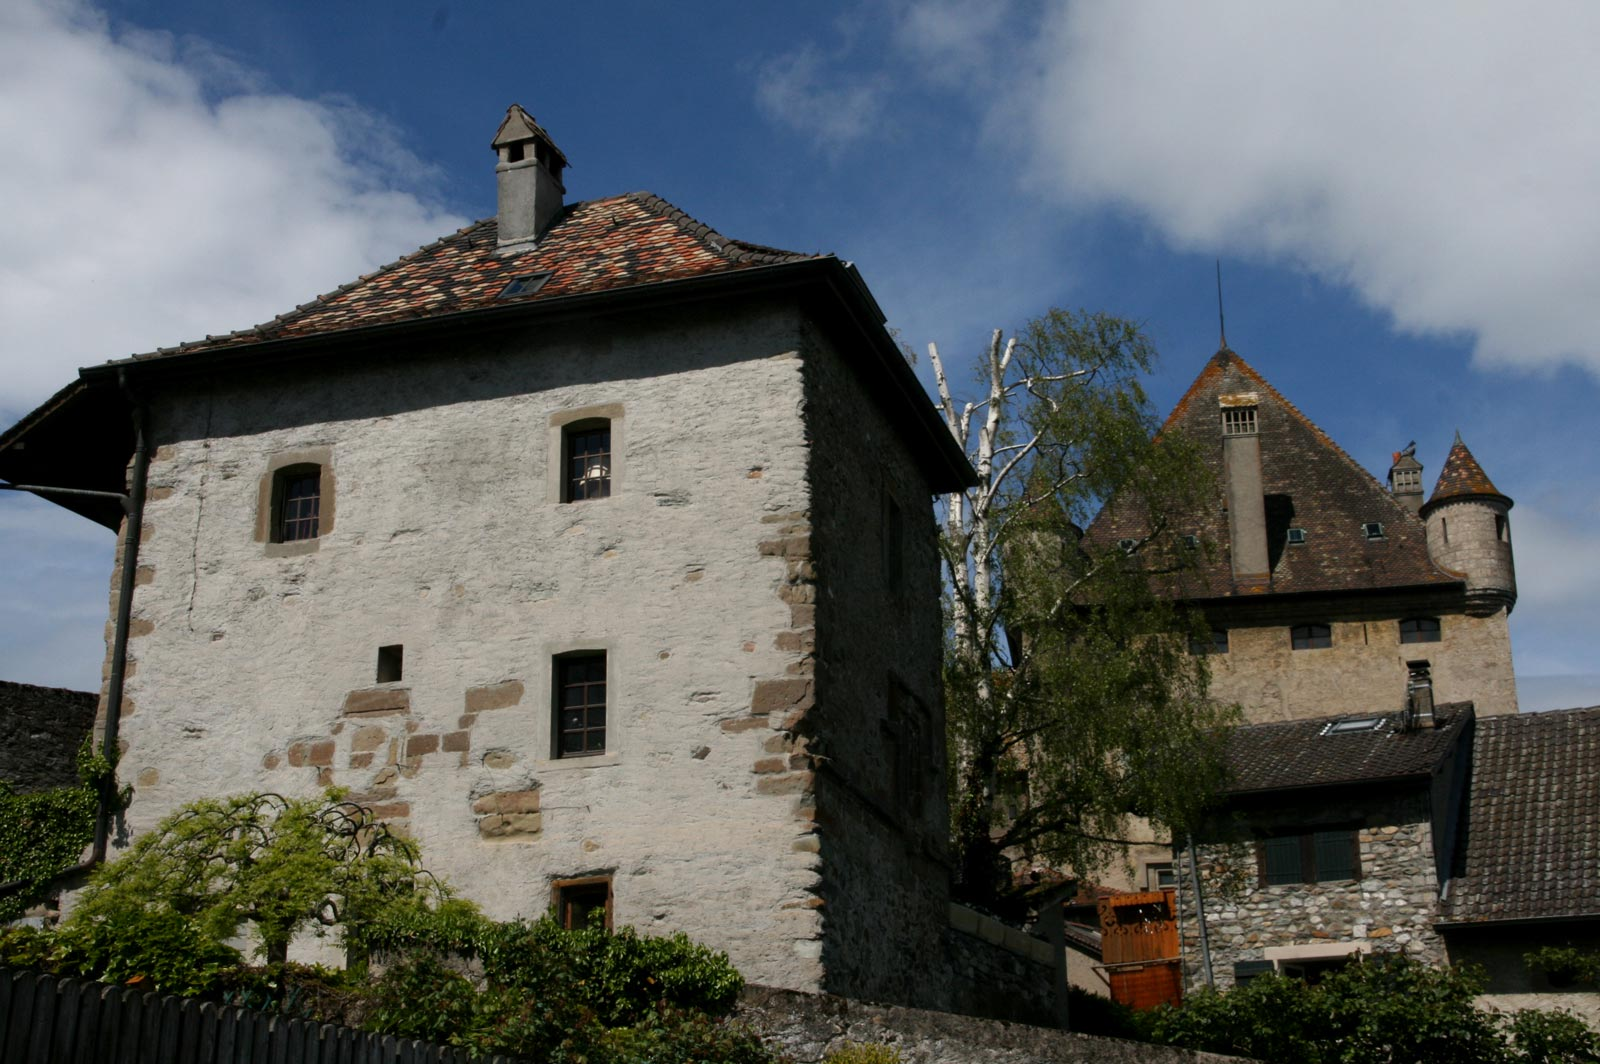 Watchtower of the medieval village and Yvoire castle.